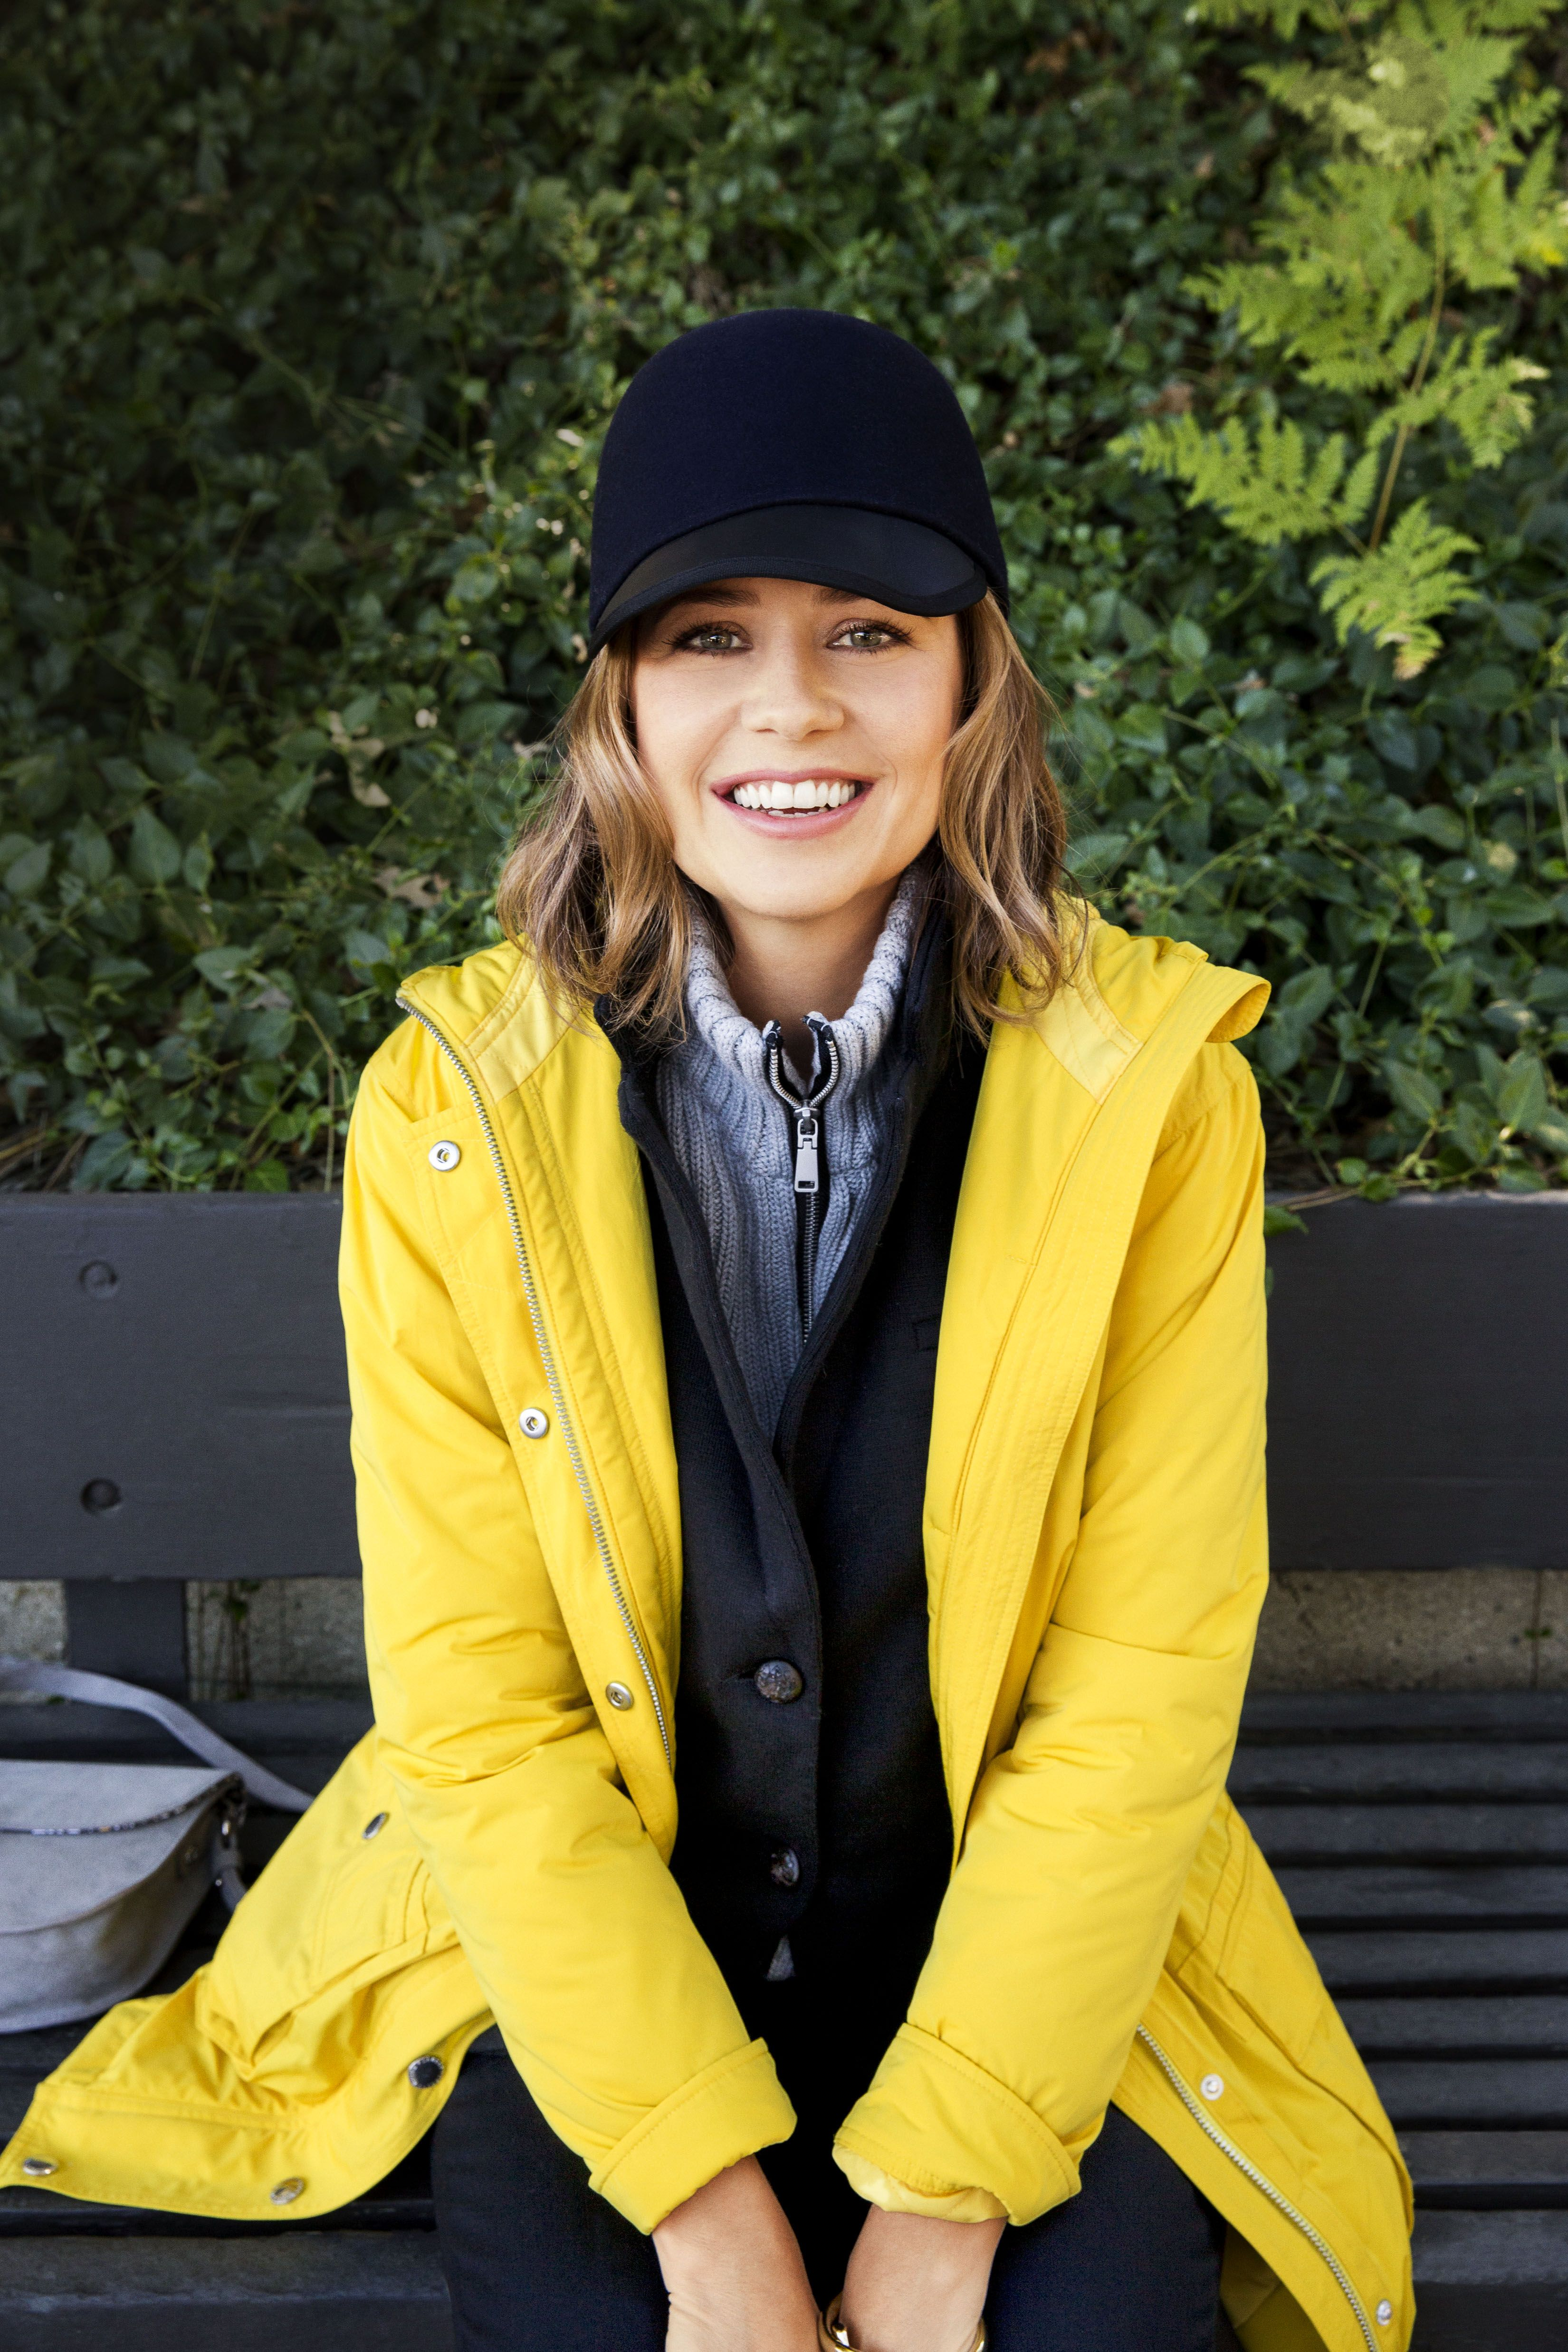 """<p>When the weather is dreary, your style forecast calls for something cheery — like this slick jacket. Hello, yellow! </p><p><em>Anorak, Lauren Ralph Lauren, $298, <a href=""""http://bloomingdales.com"""" target=""""_blank"""">bloomingdales.com</a>; Blazer with sweater, $270, <a href=""""http://525america.com"""" target=""""_blank"""">525america.com</a>. <strong>Under $100:</strong> Hat, Genie by Eugenia Kim, $80, <a href=""""http://anthropologie.com"""" target=""""_blank"""">anthropologie.com</a>.</em></p>"""